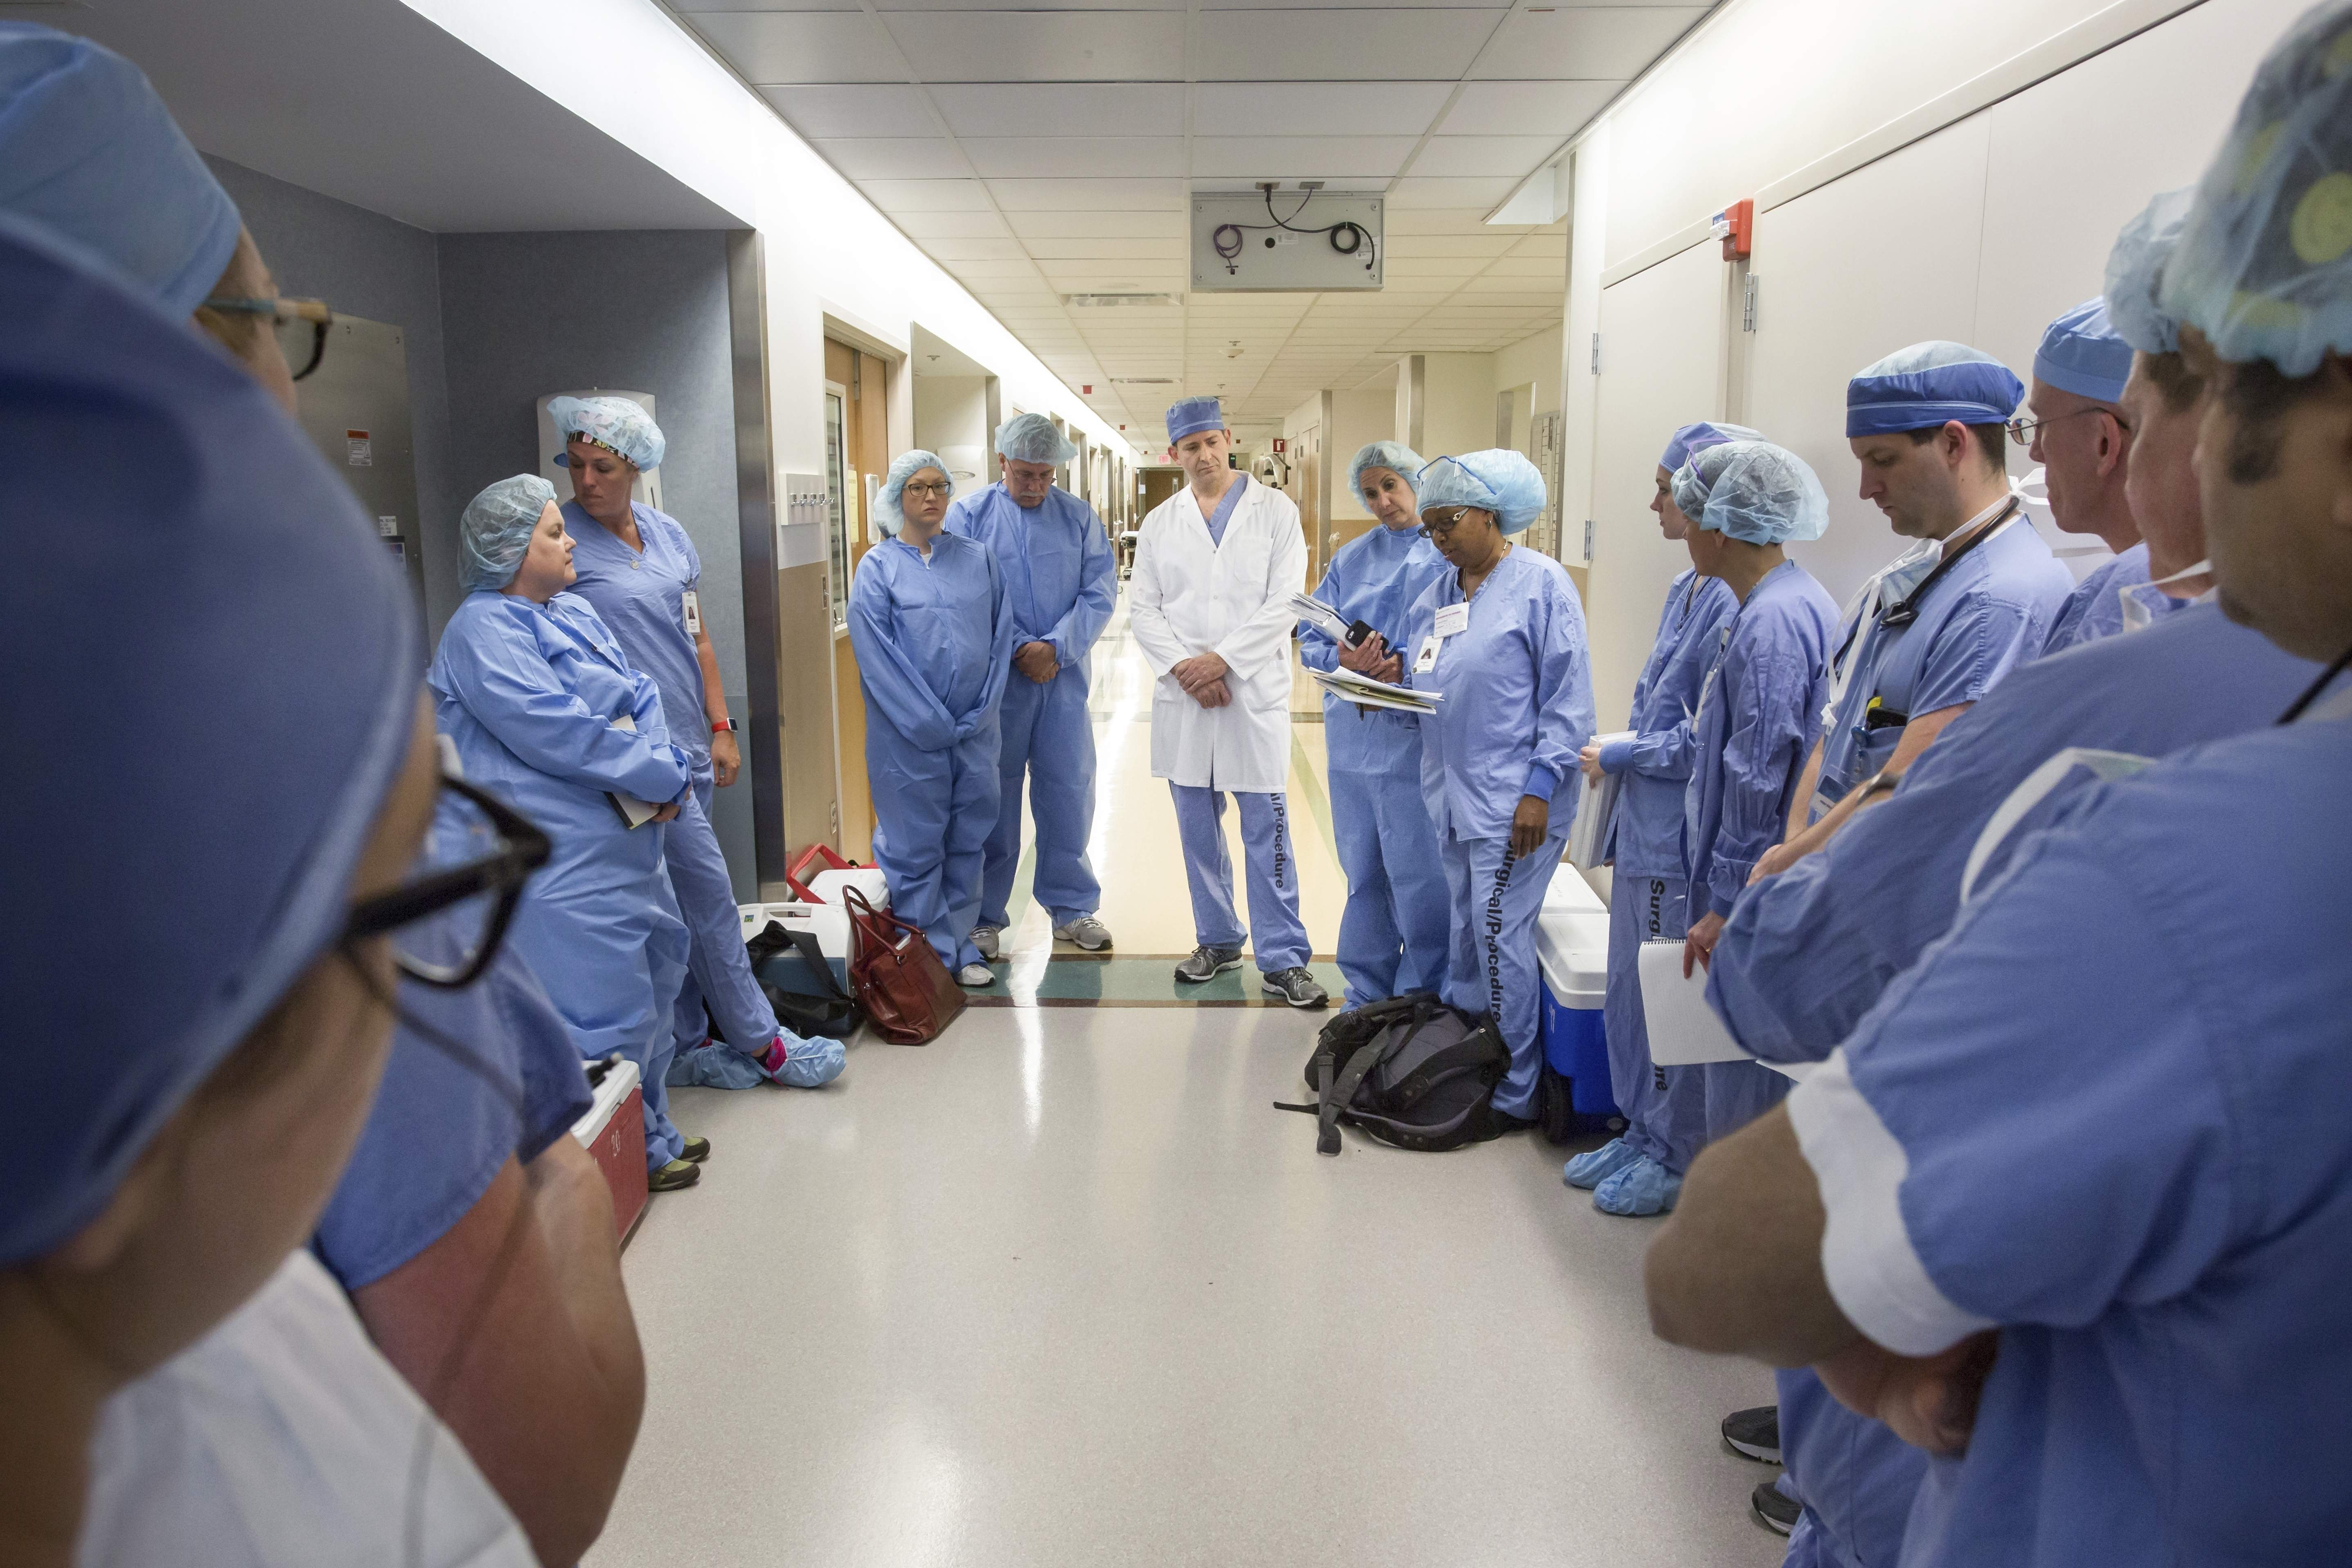 In this June 10, 2016, photo provided by the Mayo Clinic, a medical team of about 60 doctors, nurses, anesthesiologists and others at Mayo Clinic gather before performing the first face transplant surgery at their hospital in Rochester, Minn. Mardini and his team devoted more than 50 Saturdays over 3 1/2 years to rehearsing the procedure, using sets of cadaver heads to transplant the face of one to another. They used 3D imaging and virtual surgery to plot out the bony cuts so the donor's face would fit perfectly on Andy Sandness. THE ASSOCIATED PRESS